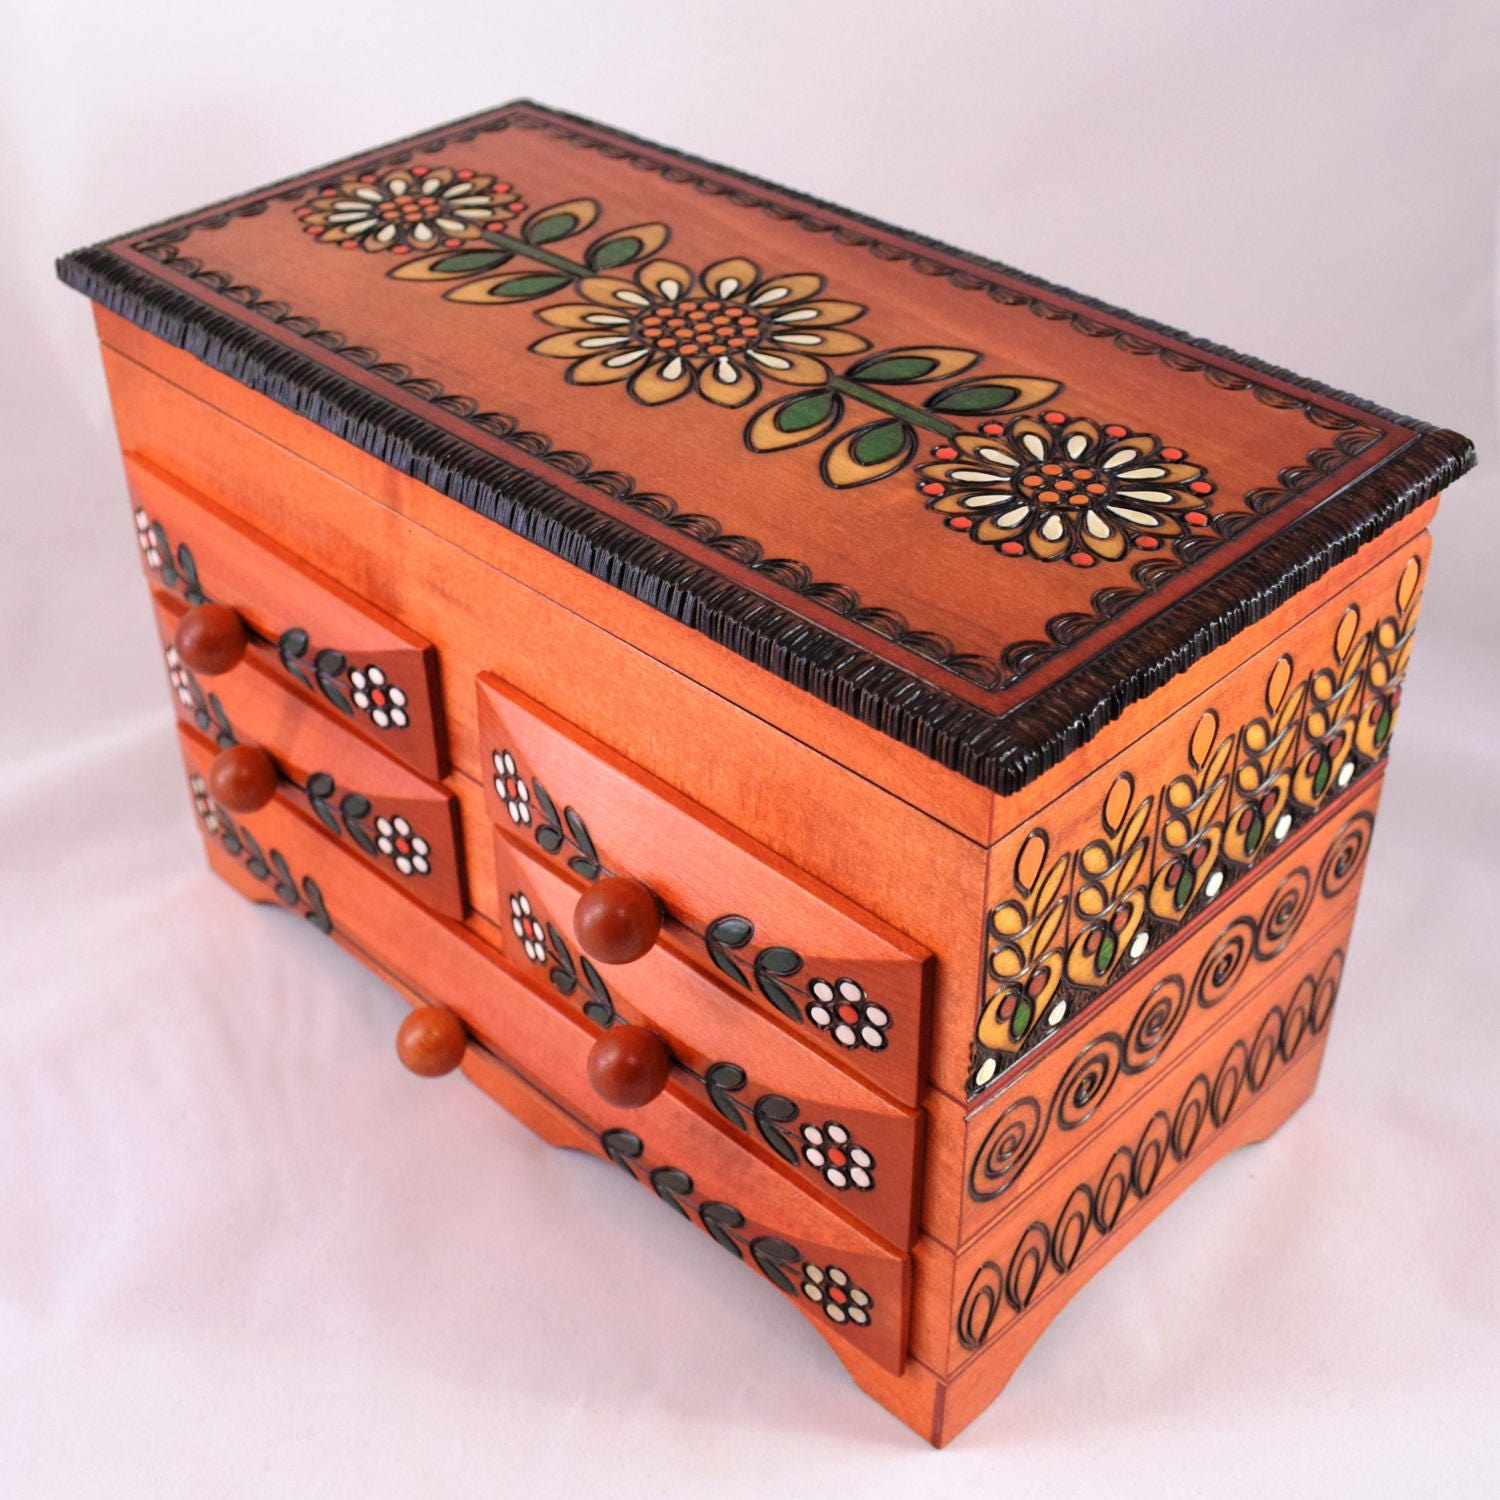 Handmade Wooden Jewellery Chest Keepsake Box Box with Drawers Keepsake Box Trinket Box  Hand carved box Jewelery Chest